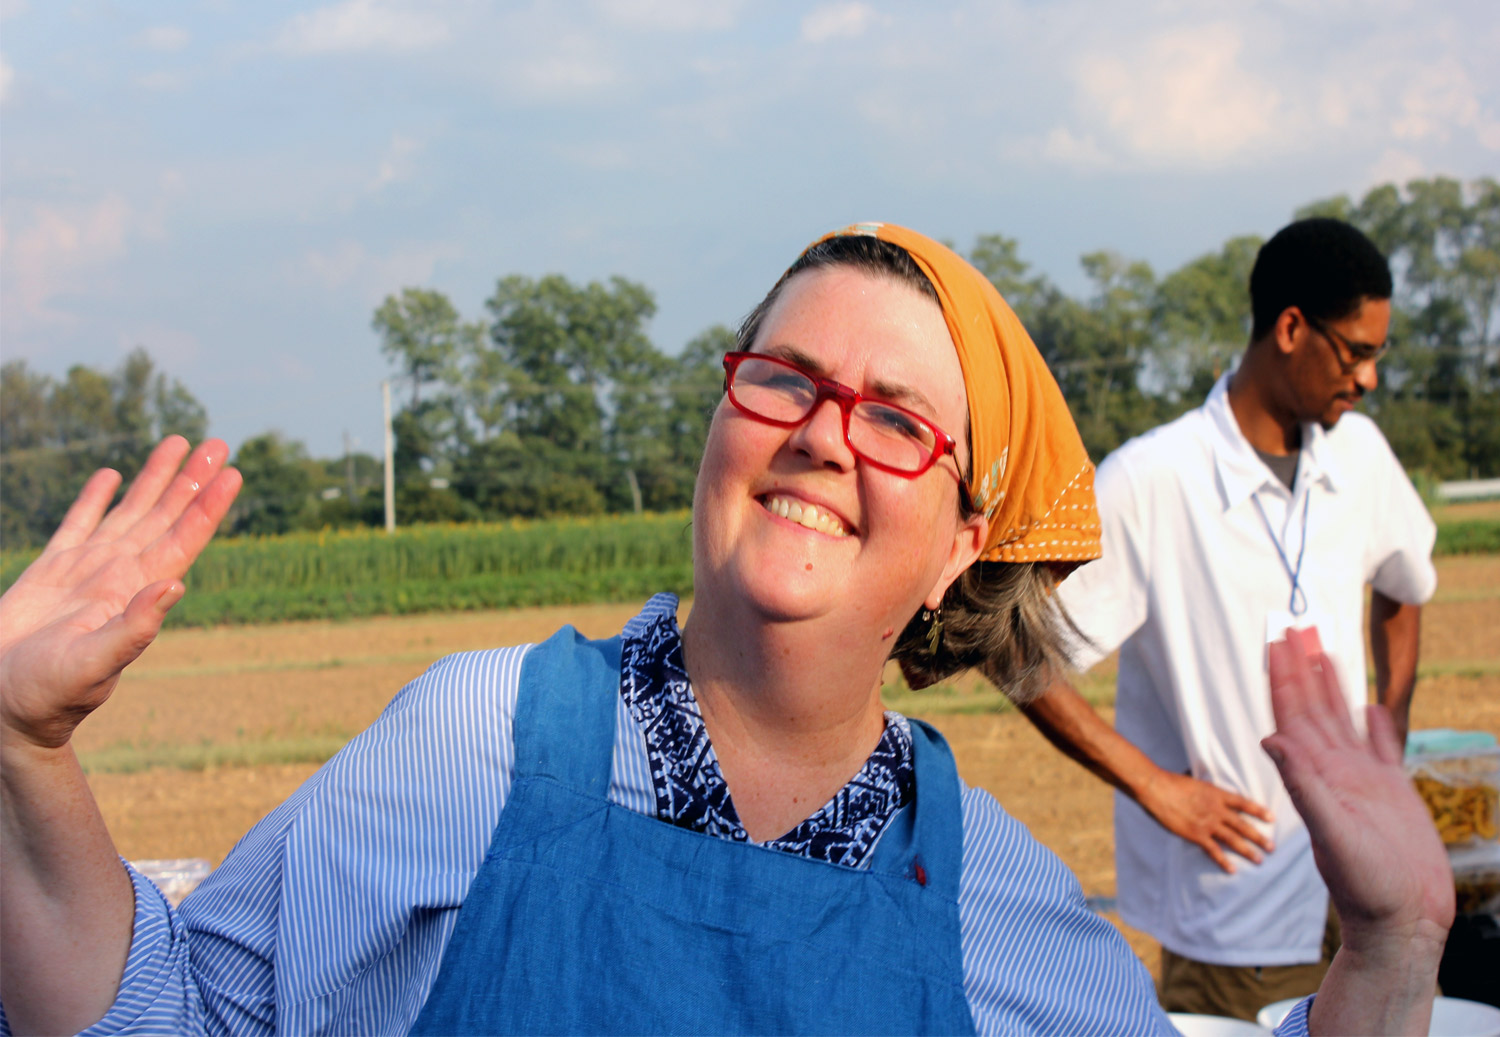 Chef Ouita Michels outdoor cooking at Southeat Grain Gathering heal at University of KY South Farm